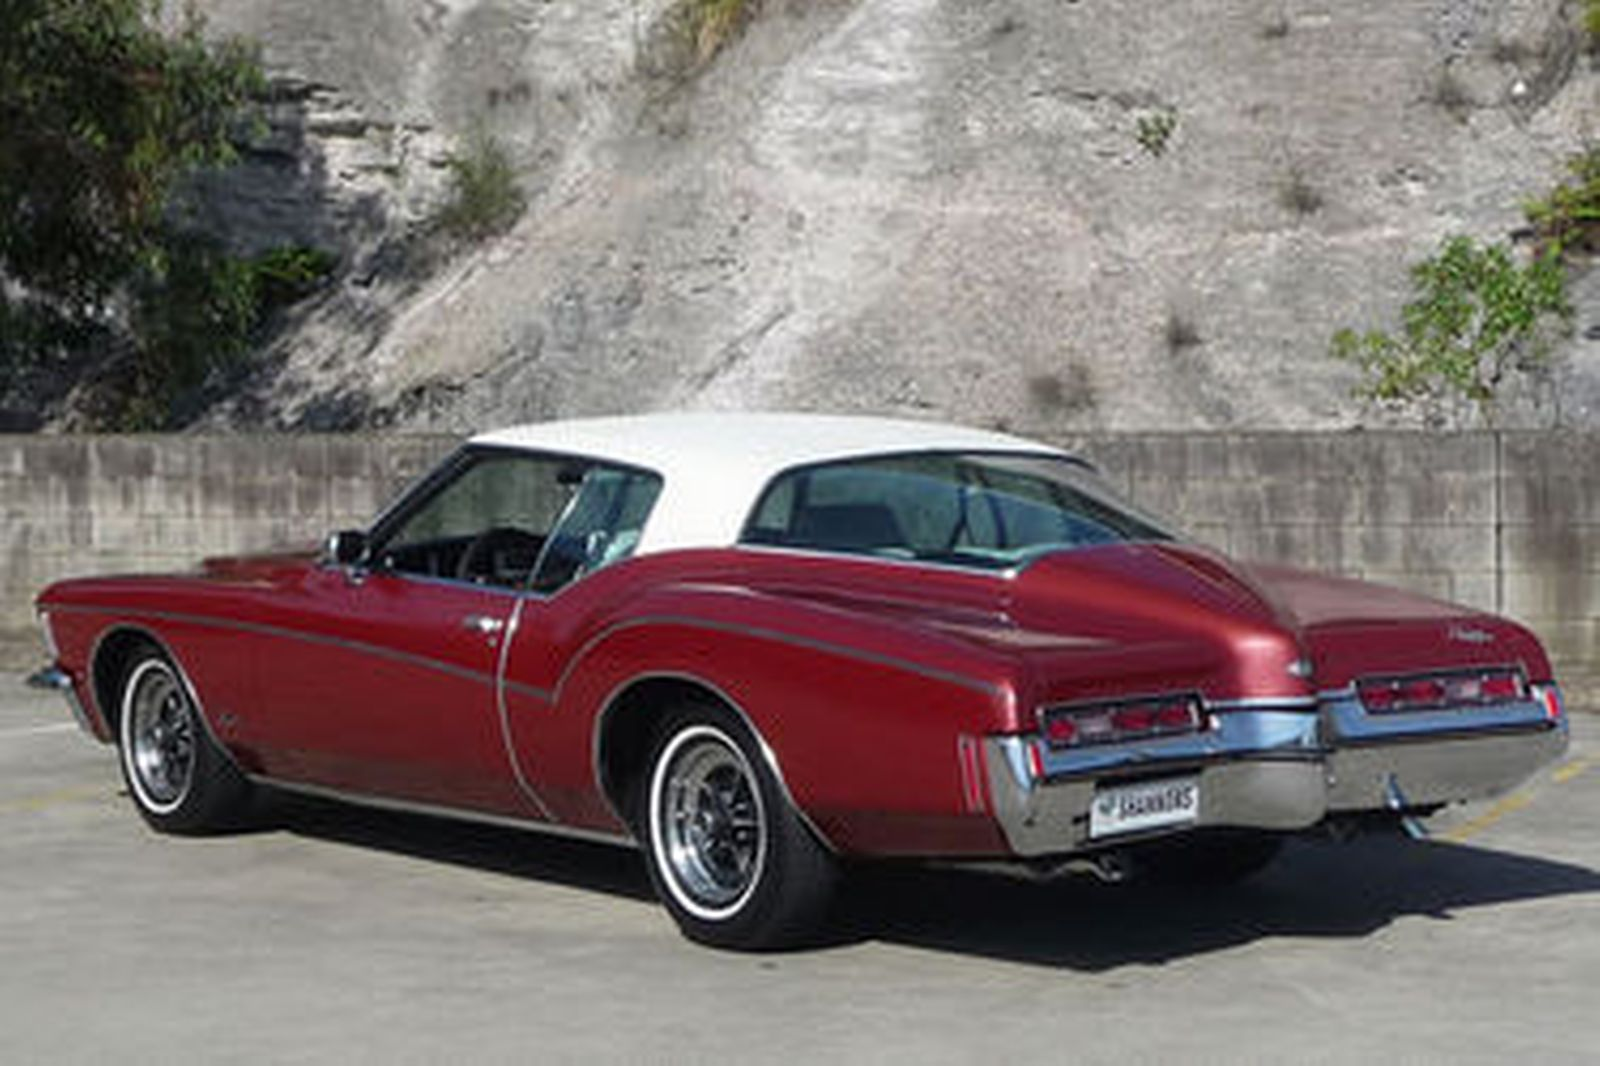 buick riviera 39 boat tail 39 coupe lhd auctions lot 10 shannons. Black Bedroom Furniture Sets. Home Design Ideas